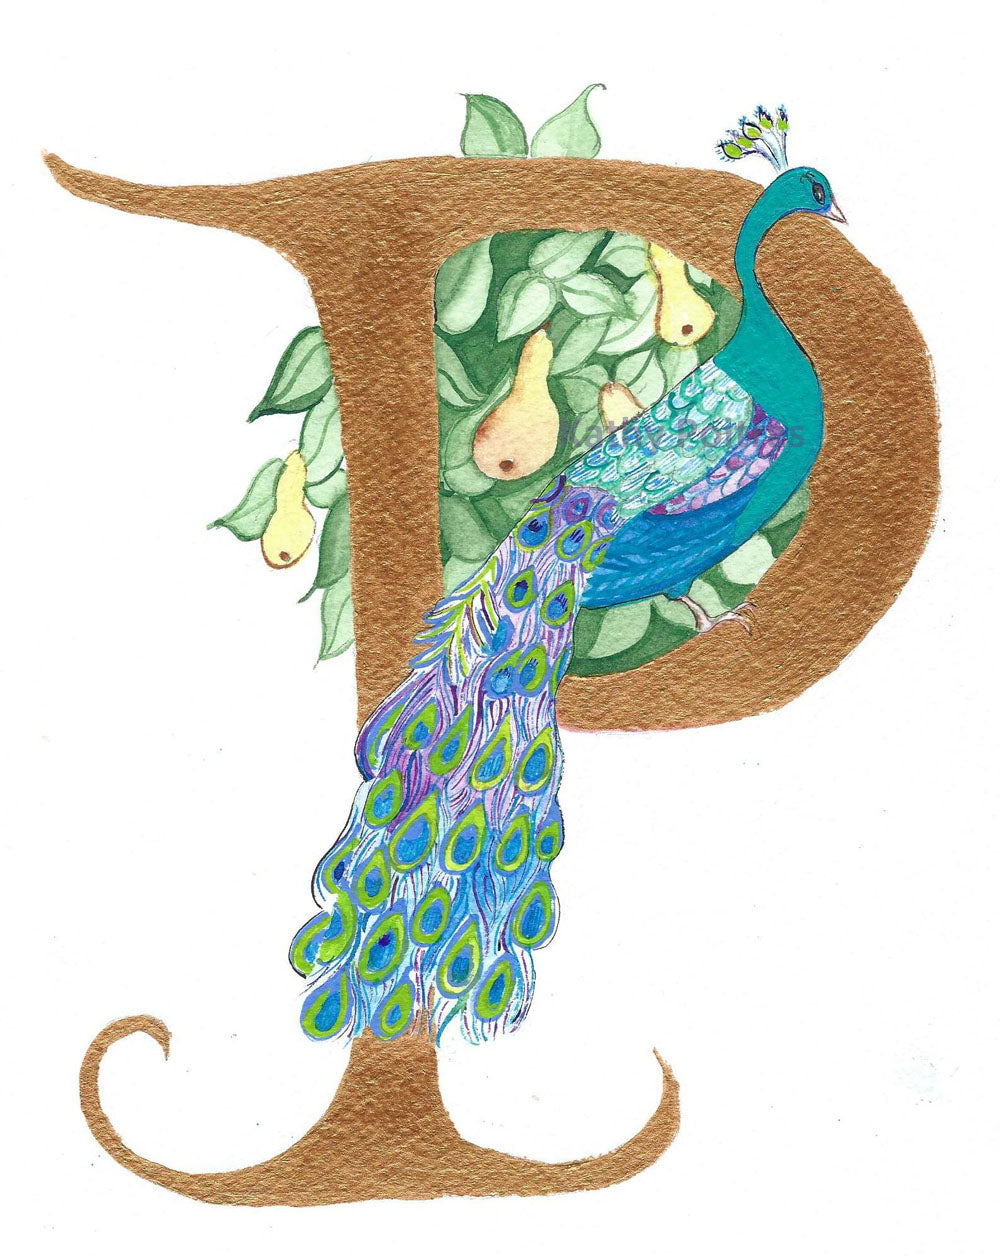 Illustrated Letter P for Peacock and Pear tree